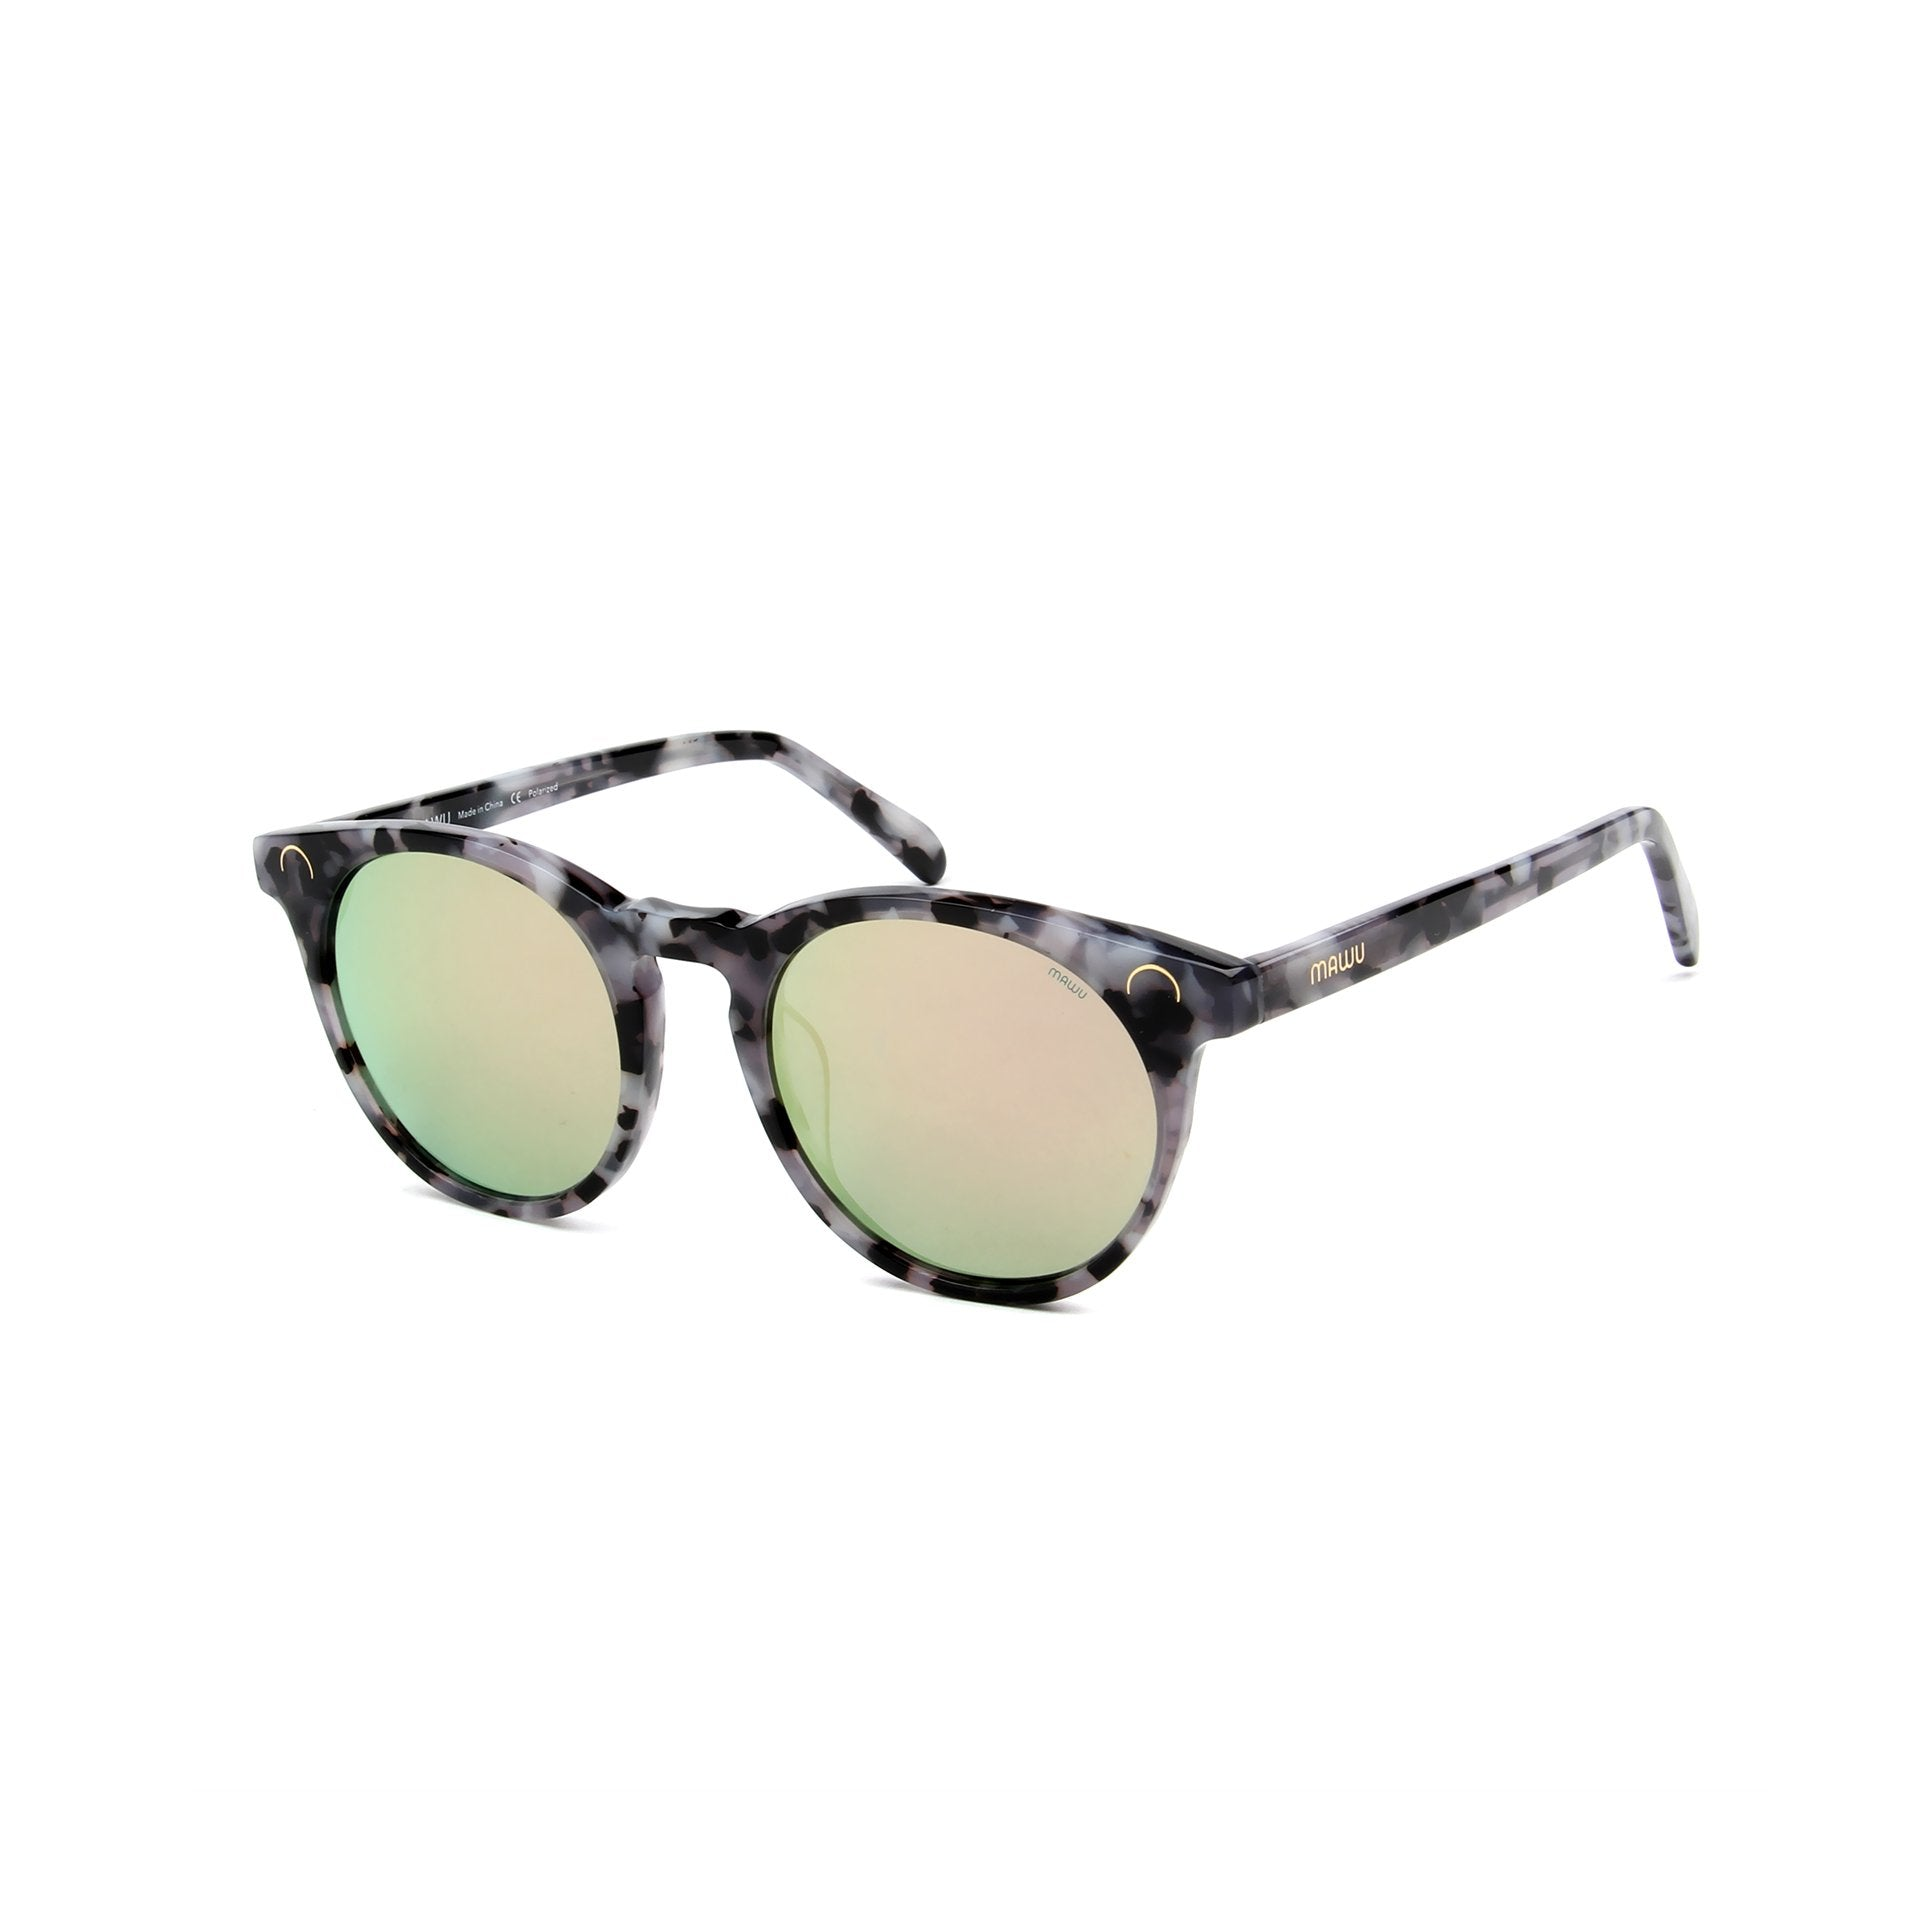 Maré Black & White Motley - Angle View - Pink lens - Mawu sunglasses